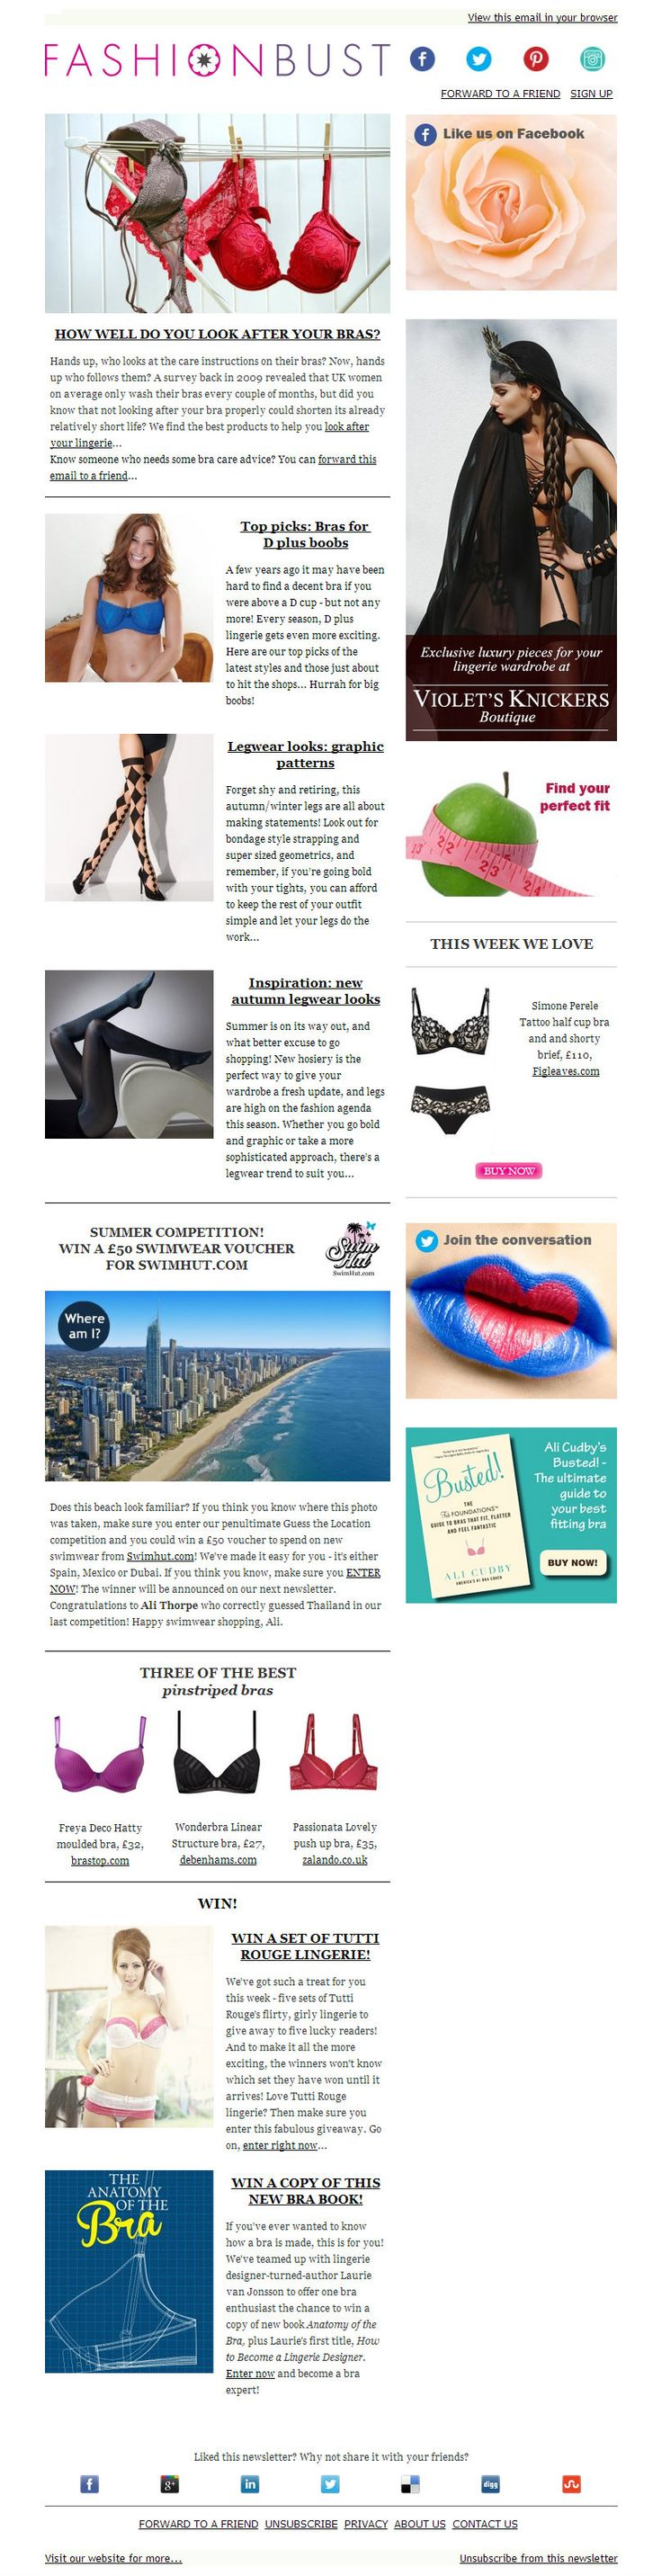 In the latest Fashion Bust newsletter... why it's important to look after your bras, the latest hosiery trends for autumn/winter 2013 and gorgeous bras for fuller busts.